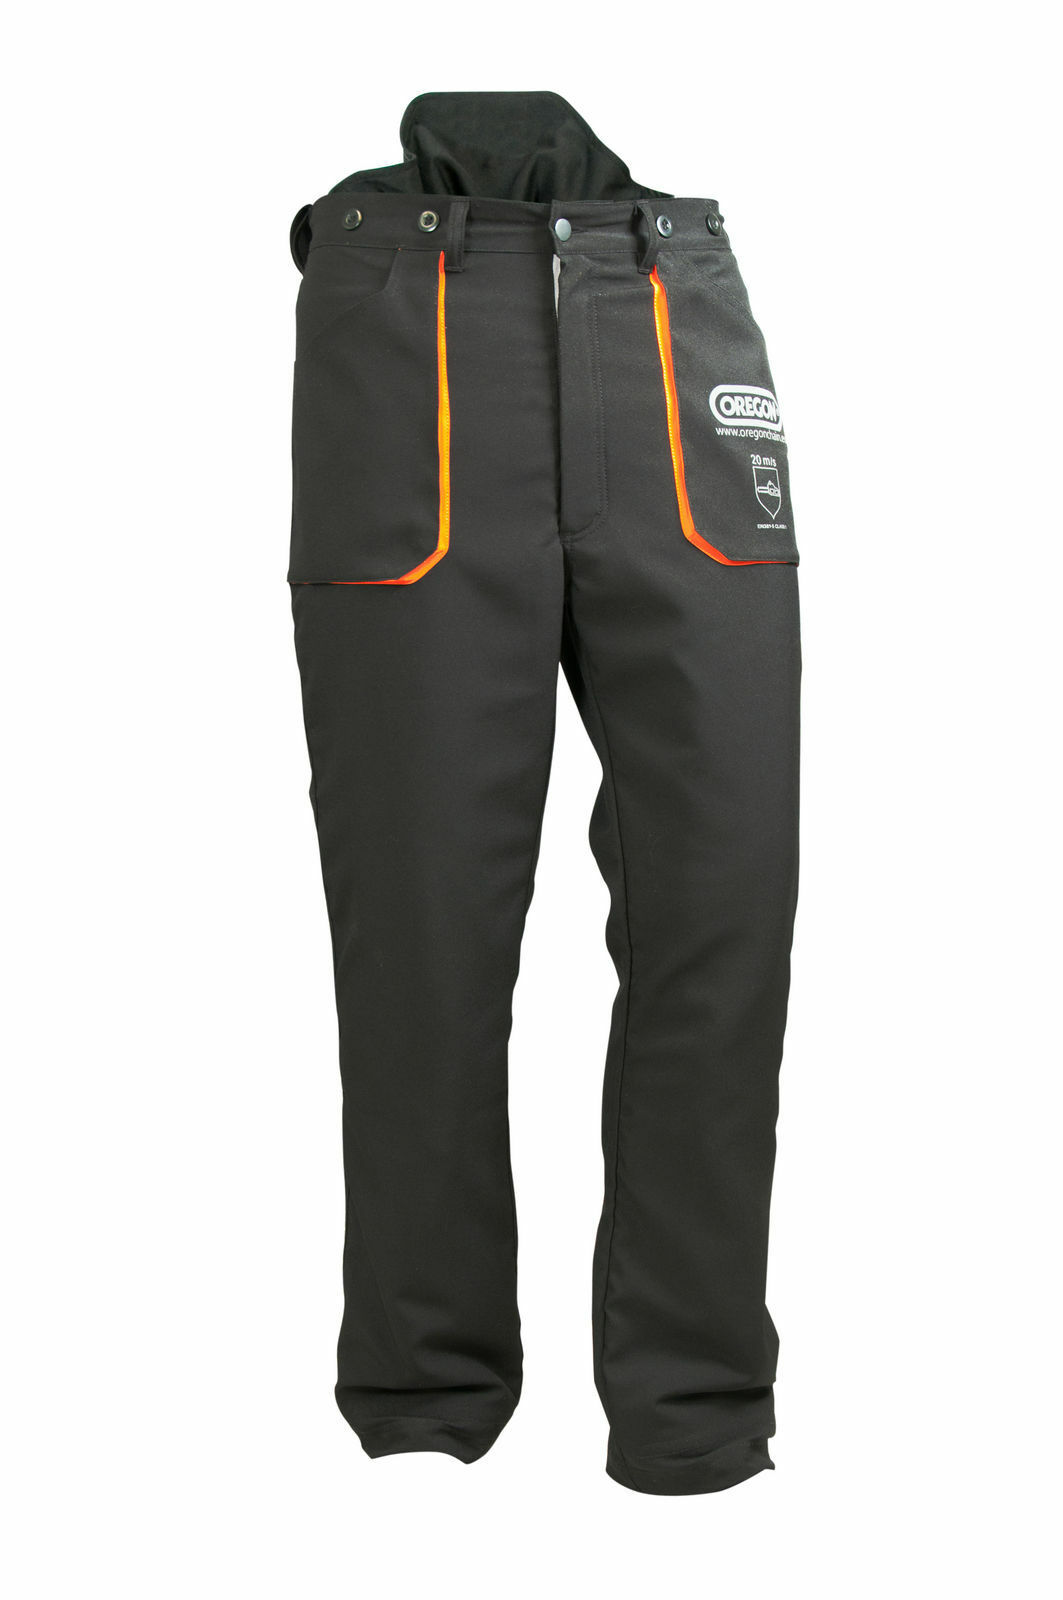 Oregon Yukon Protective Type C Class 1 Chainsaw Trousers S-3XL 295397